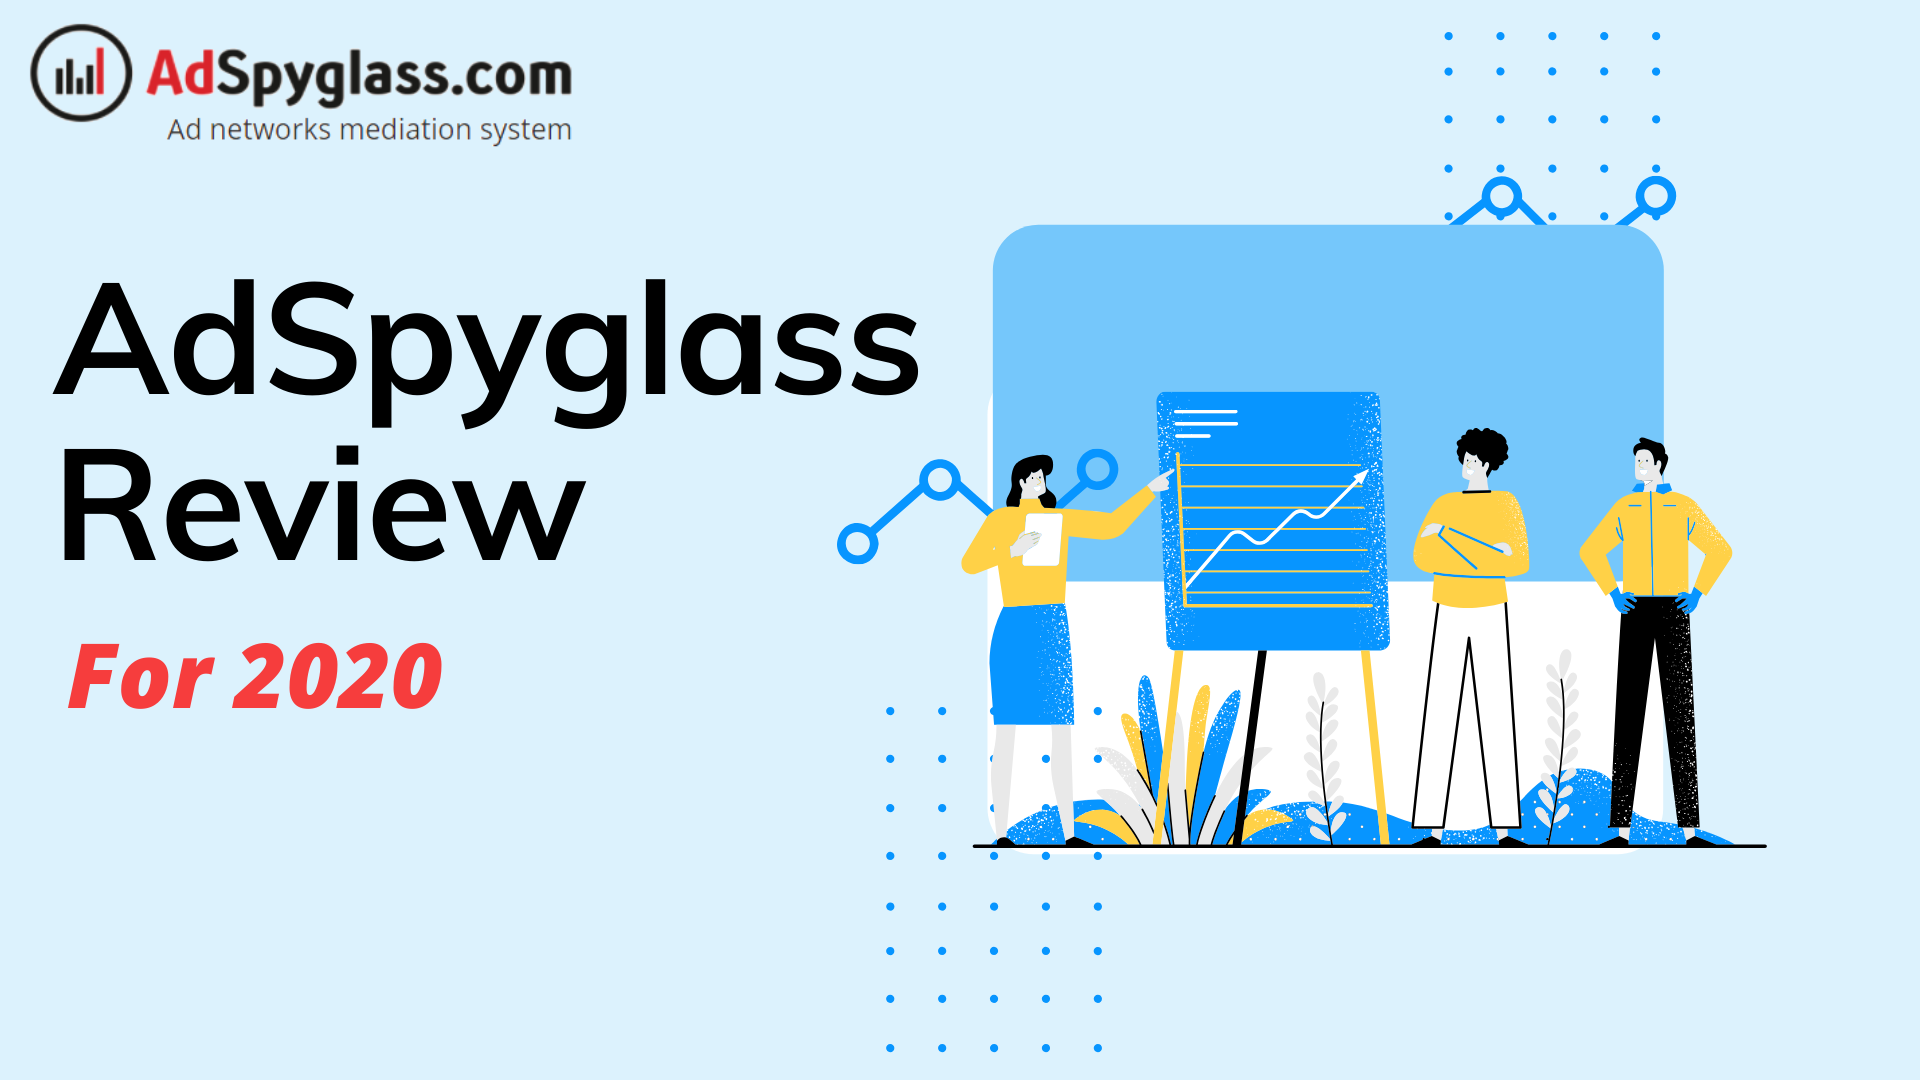 adspyglass-review-2020-the-best-ad-management-solution-for-enterprise